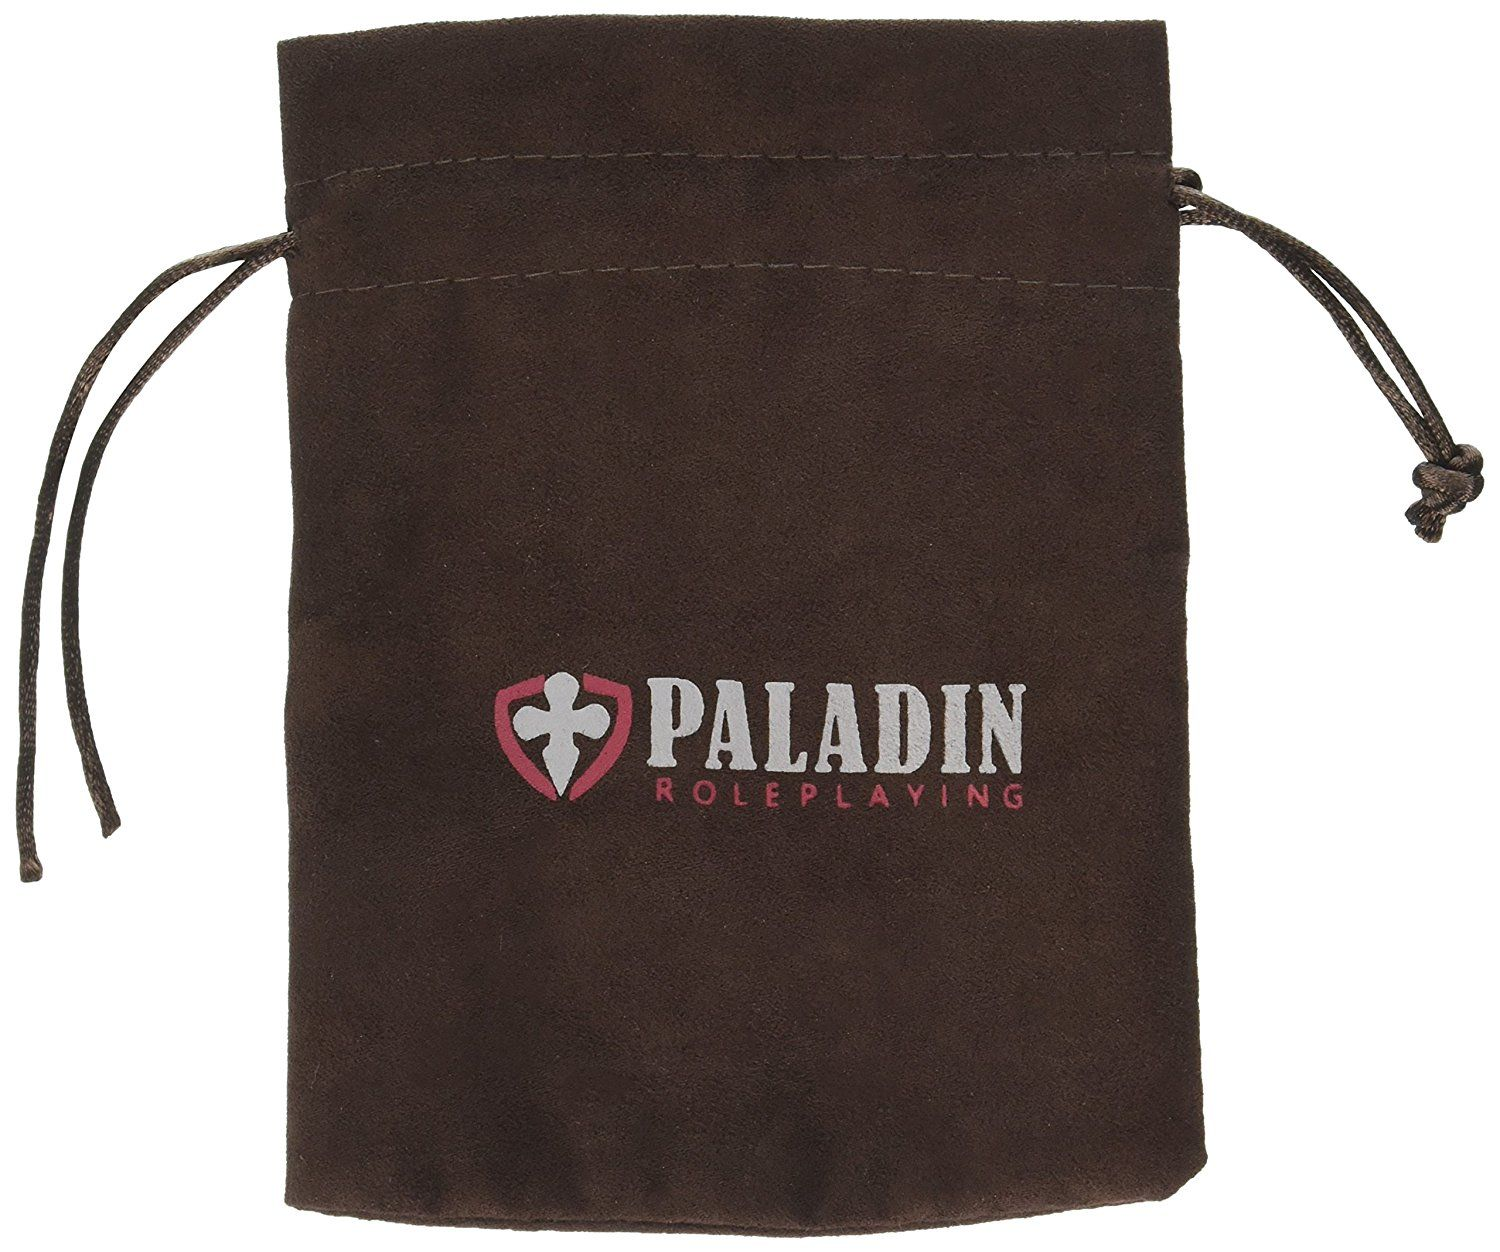 Paladin Roleplaying Dice Bag - CLEARANCE SALE